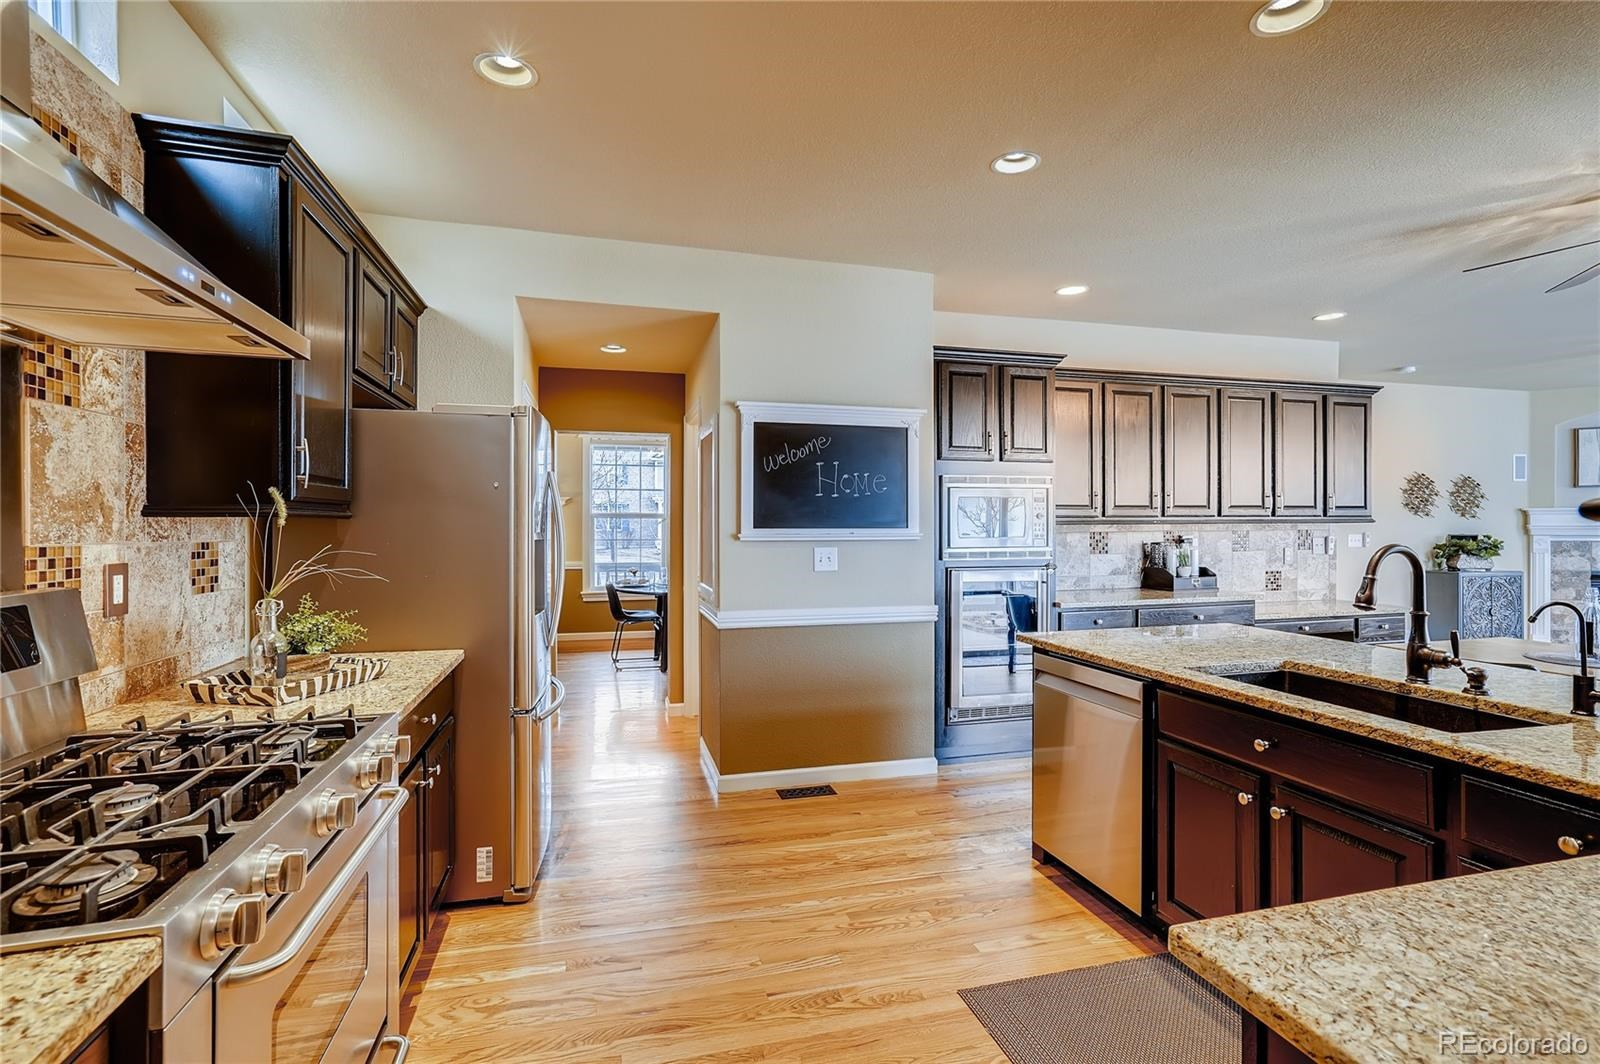 MLS# 8020804 - 18 - 8642 Five Parks Drive, Arvada, CO 80005